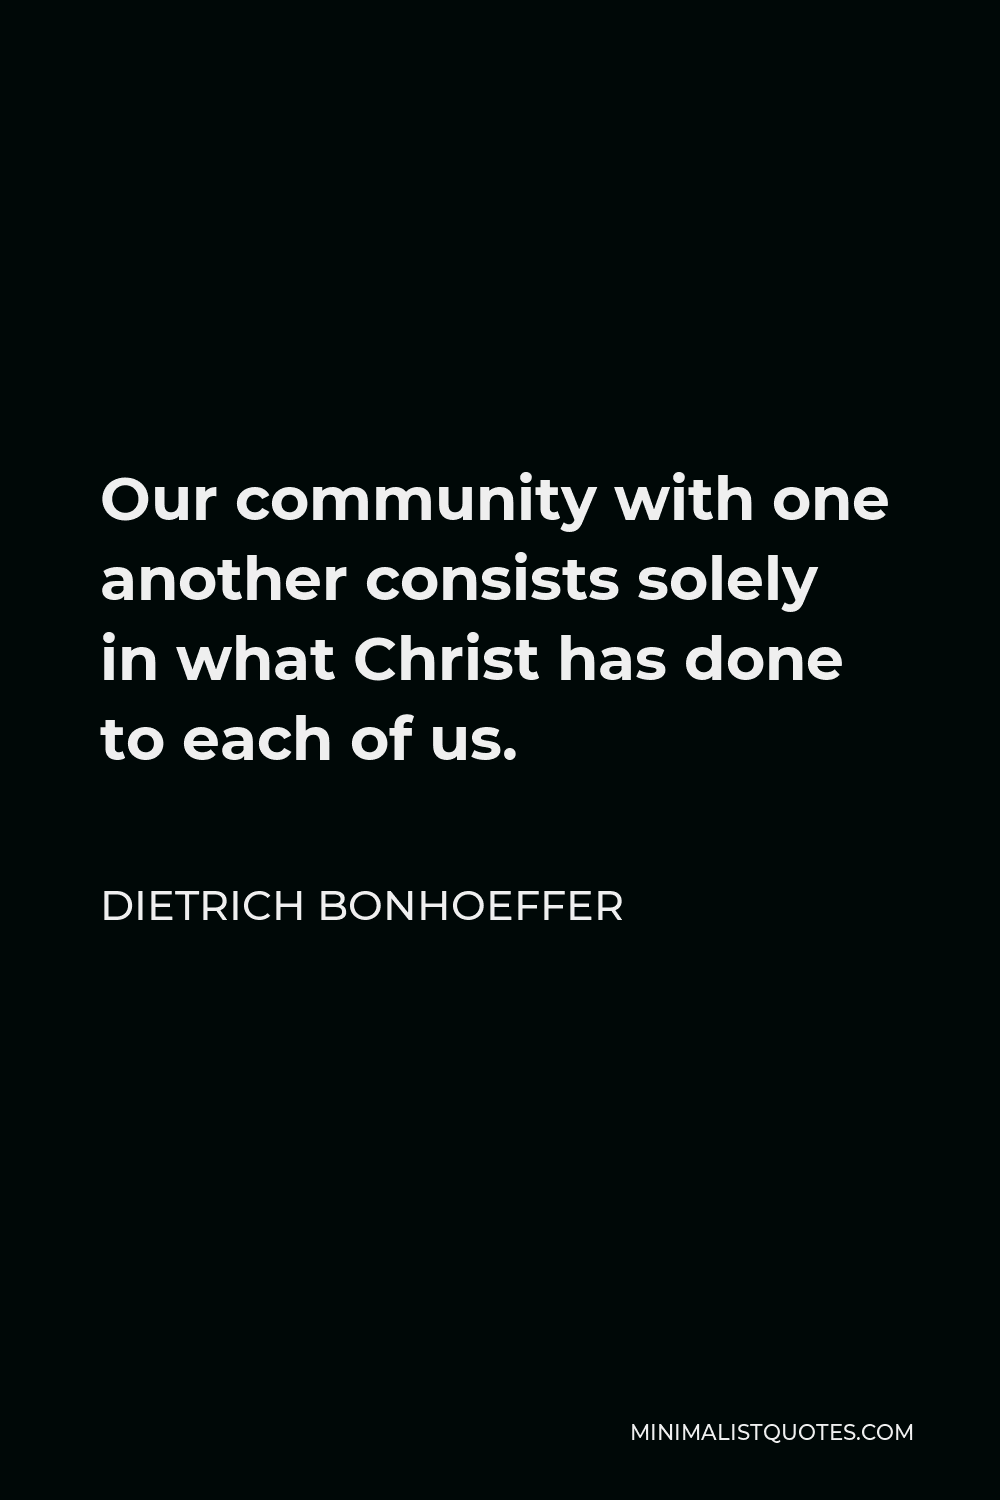 Dietrich Bonhoeffer Quote - Our community with one another consists solely in what Christ has done to each of us.